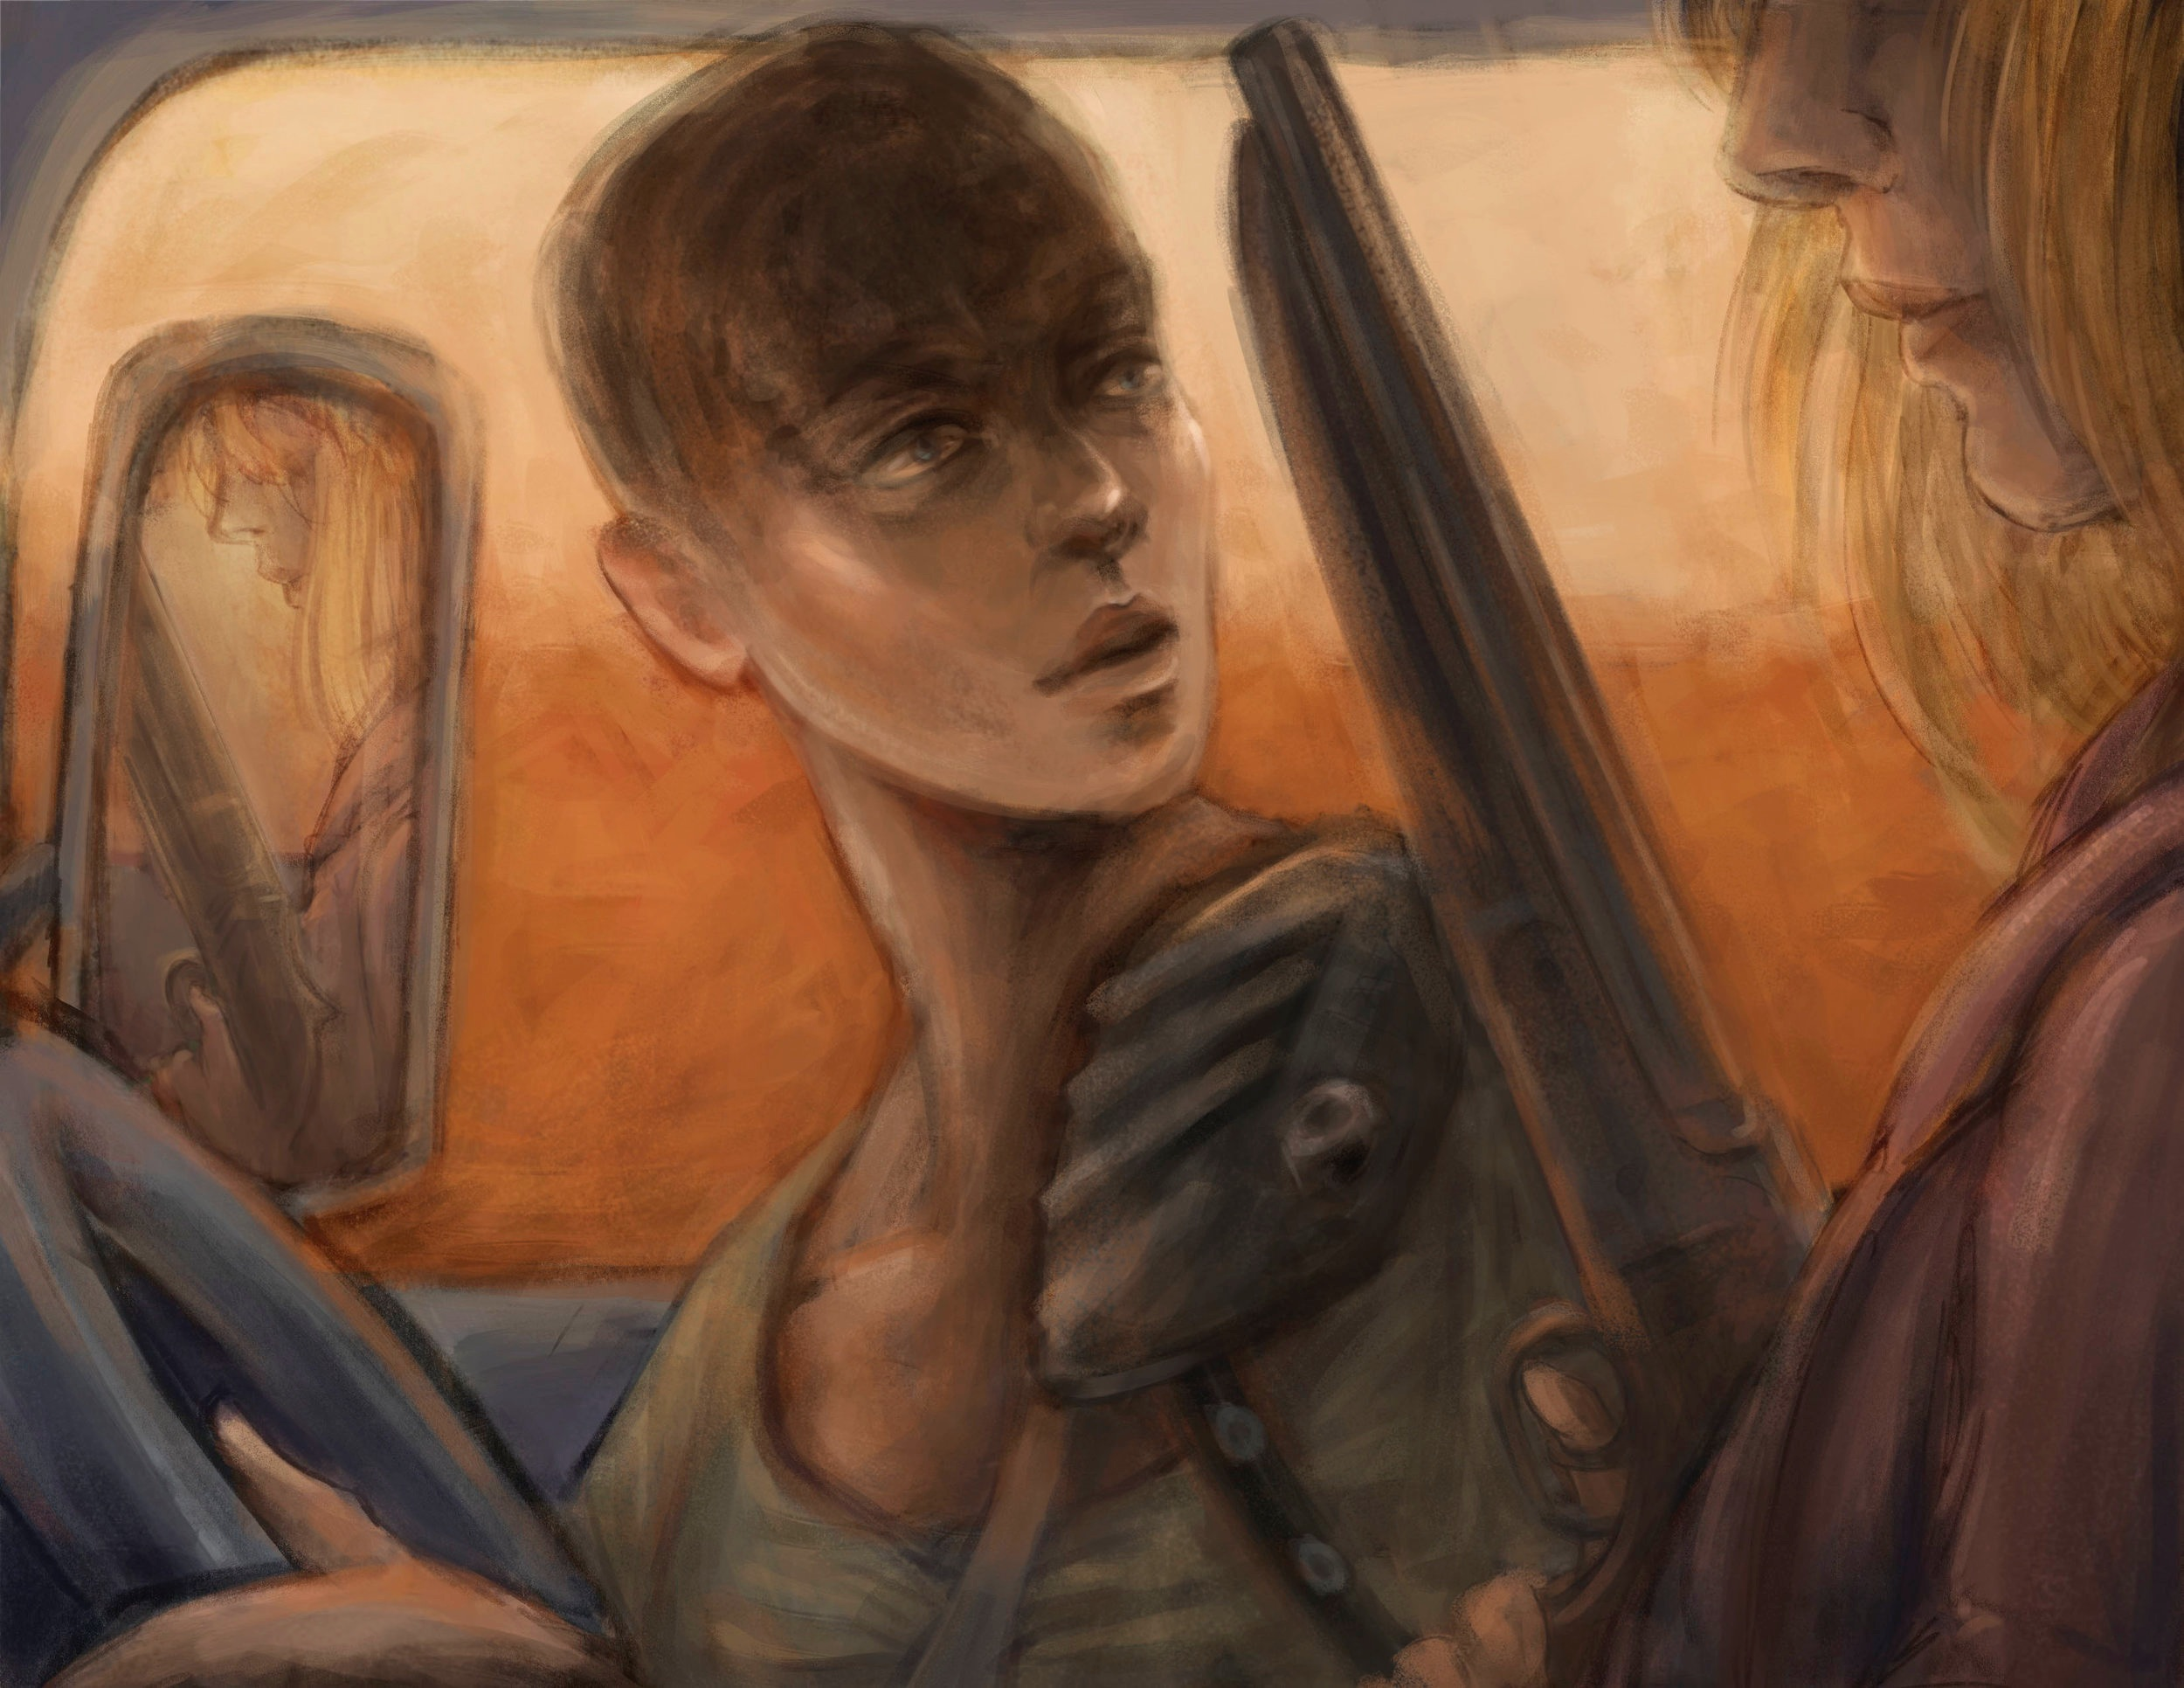 Furiosa   Digital, Procreate, Photoshop  Part of a thesis project on how individuals hardships can pave the way for their eventual successes.  This image illustrates actress Charlize Theron and how the death of her father by her mother's hand allowed her to leave home and pursue her career.   © Copyright Camille Codling 2018